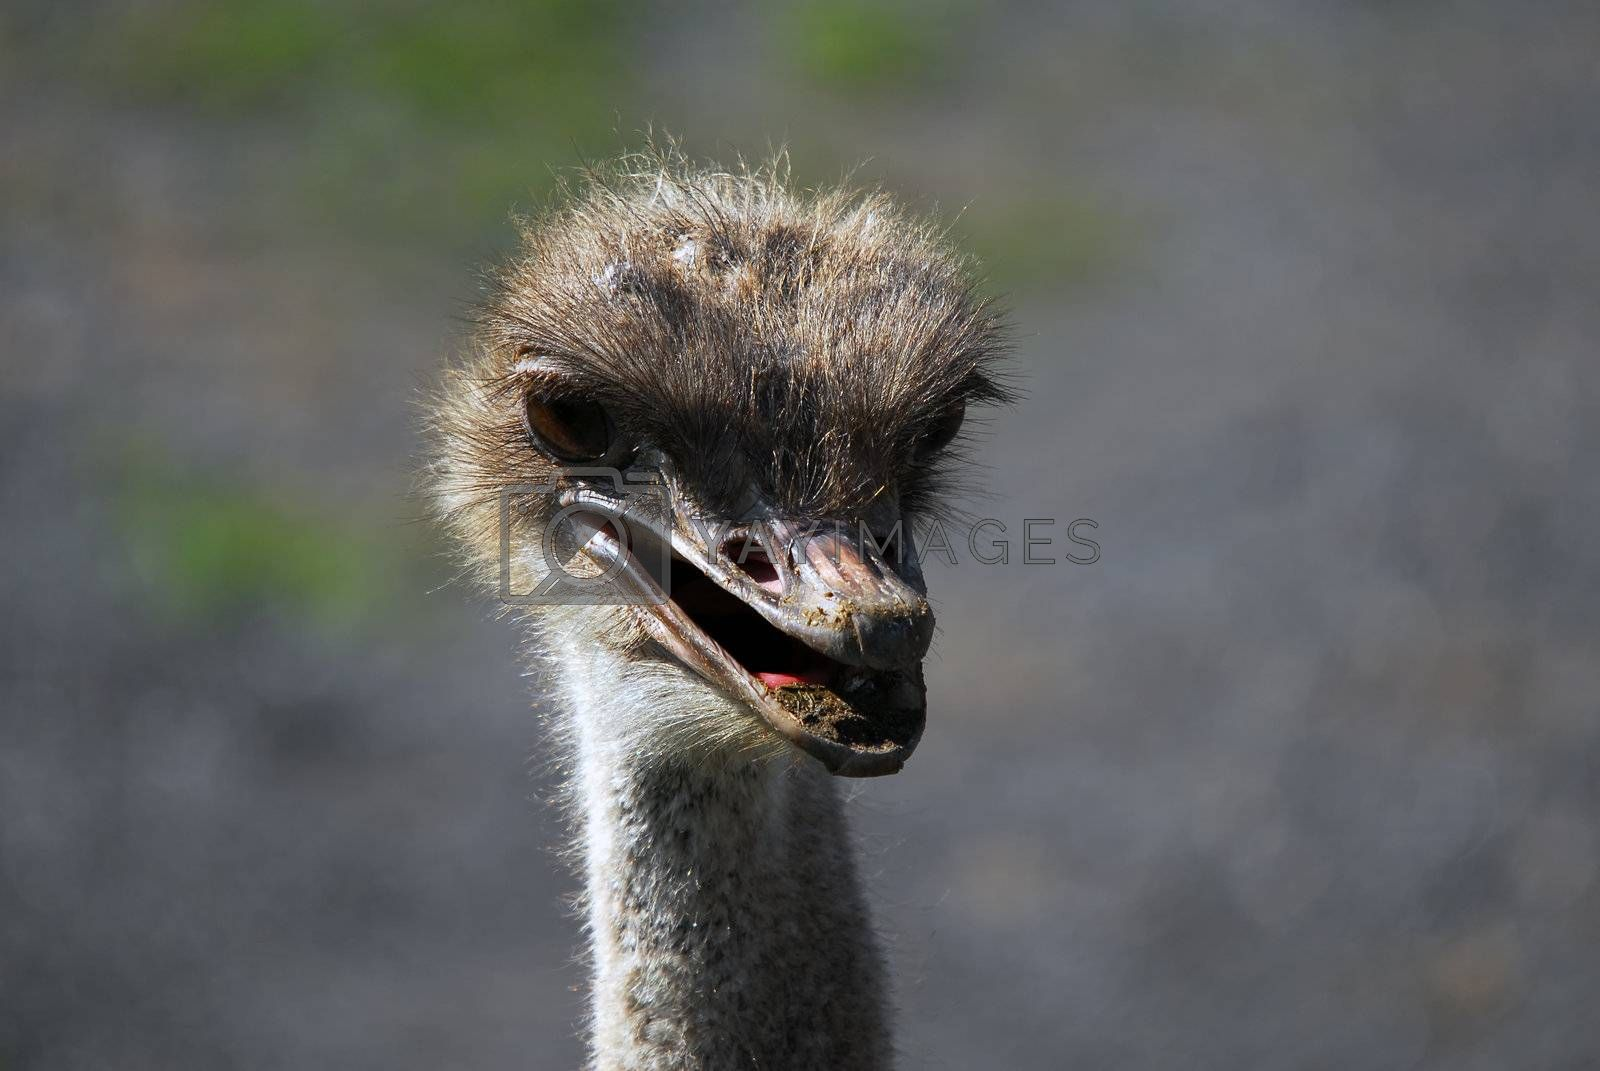 Royalty free image of Ostrich by nialat